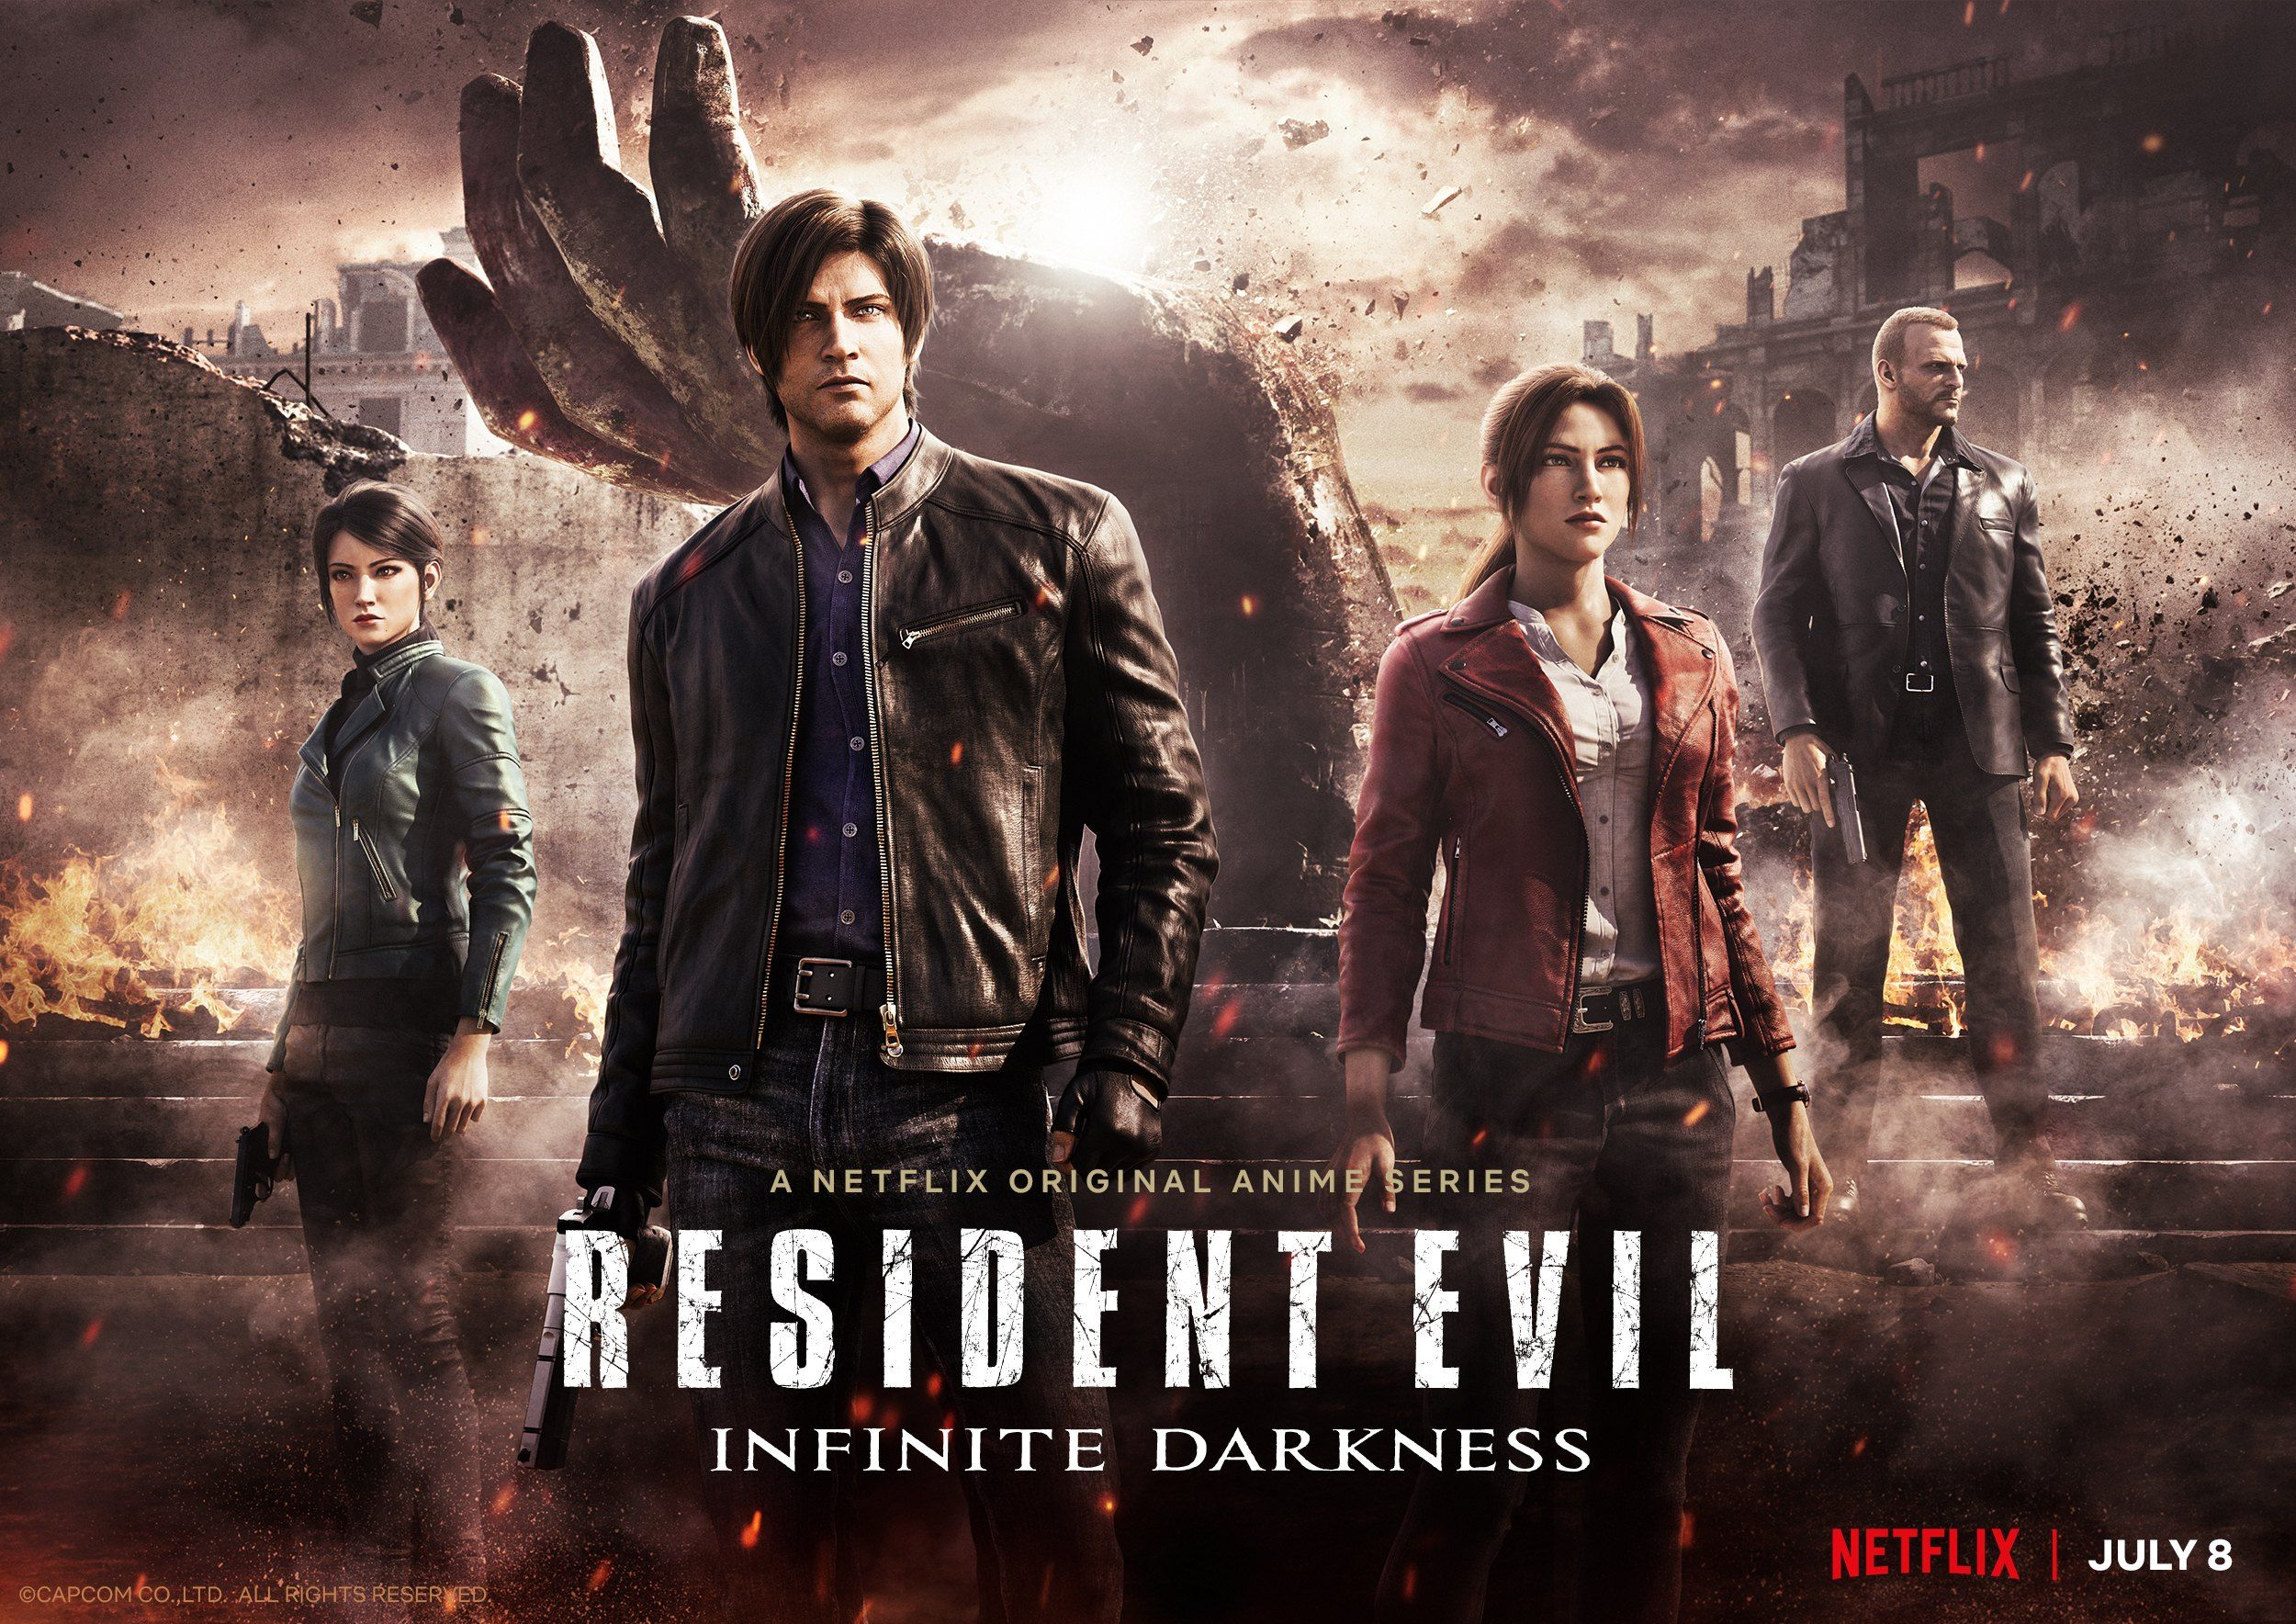 Resident Evil: Infinite Darkness Opening Scene Takes Us Straight Into the War